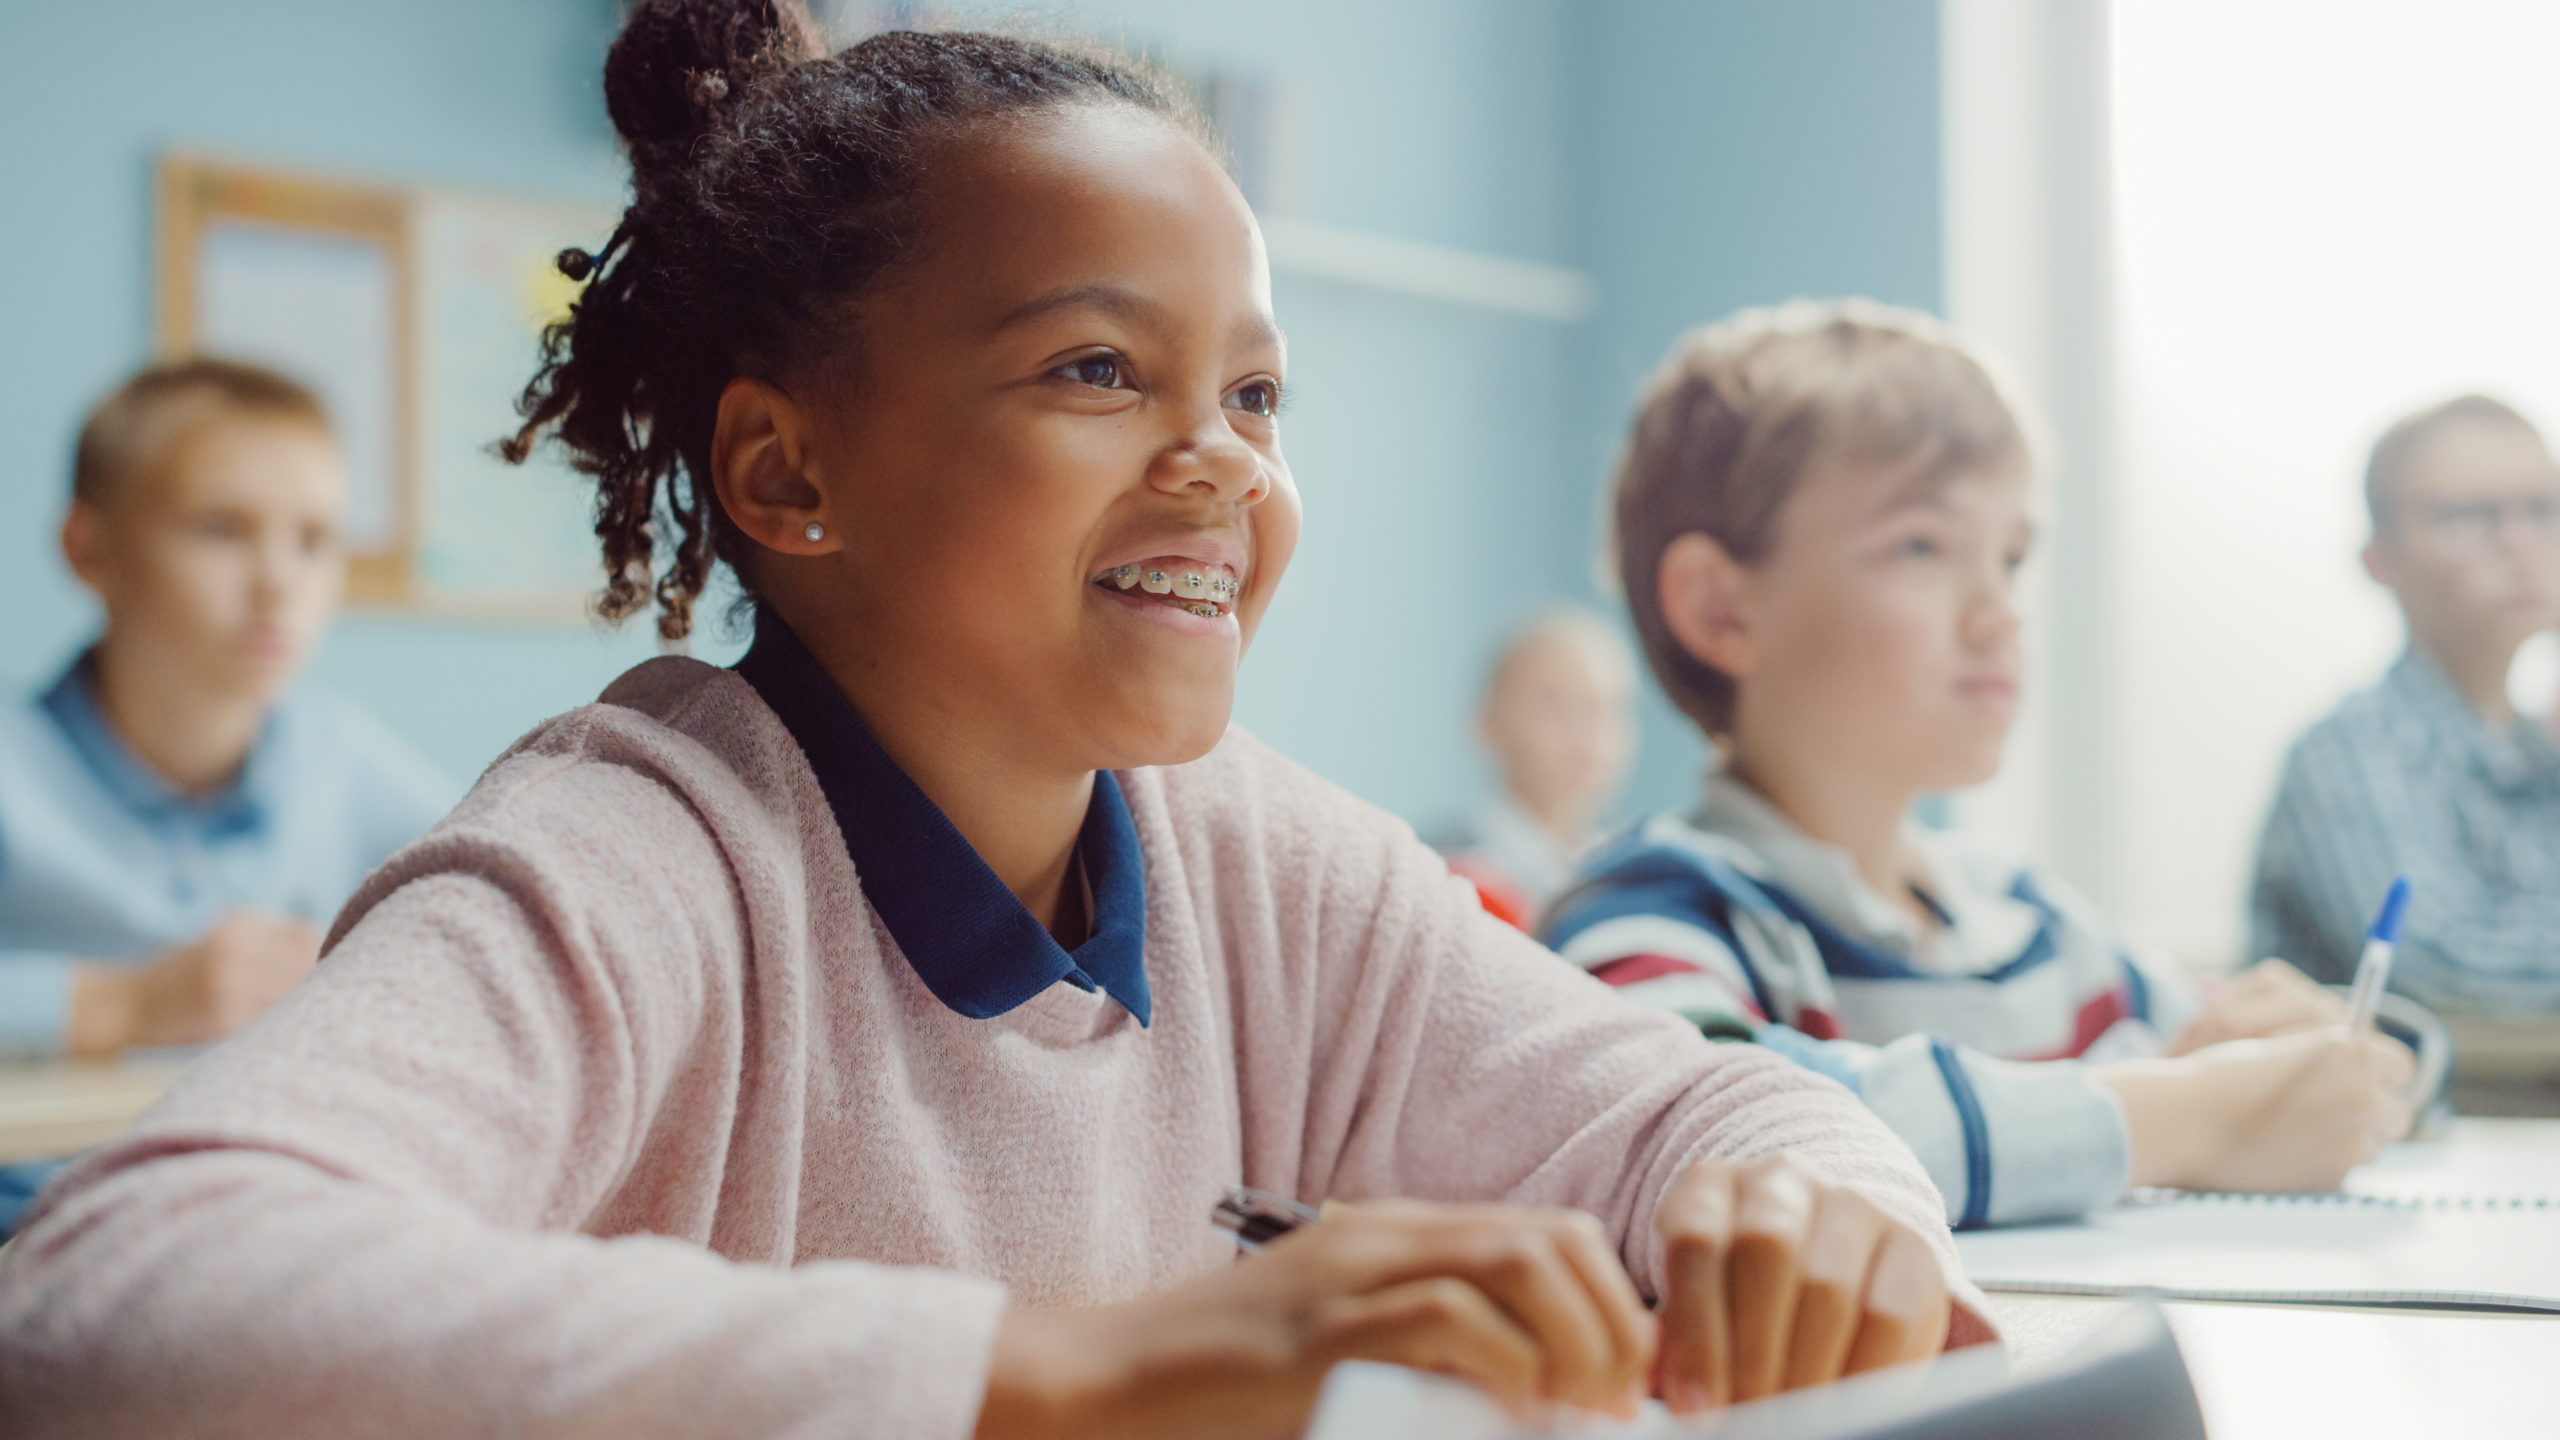 Mindfulness-Can-Empowers-Kids-Teens_child sitting in classroom with other kids smiling